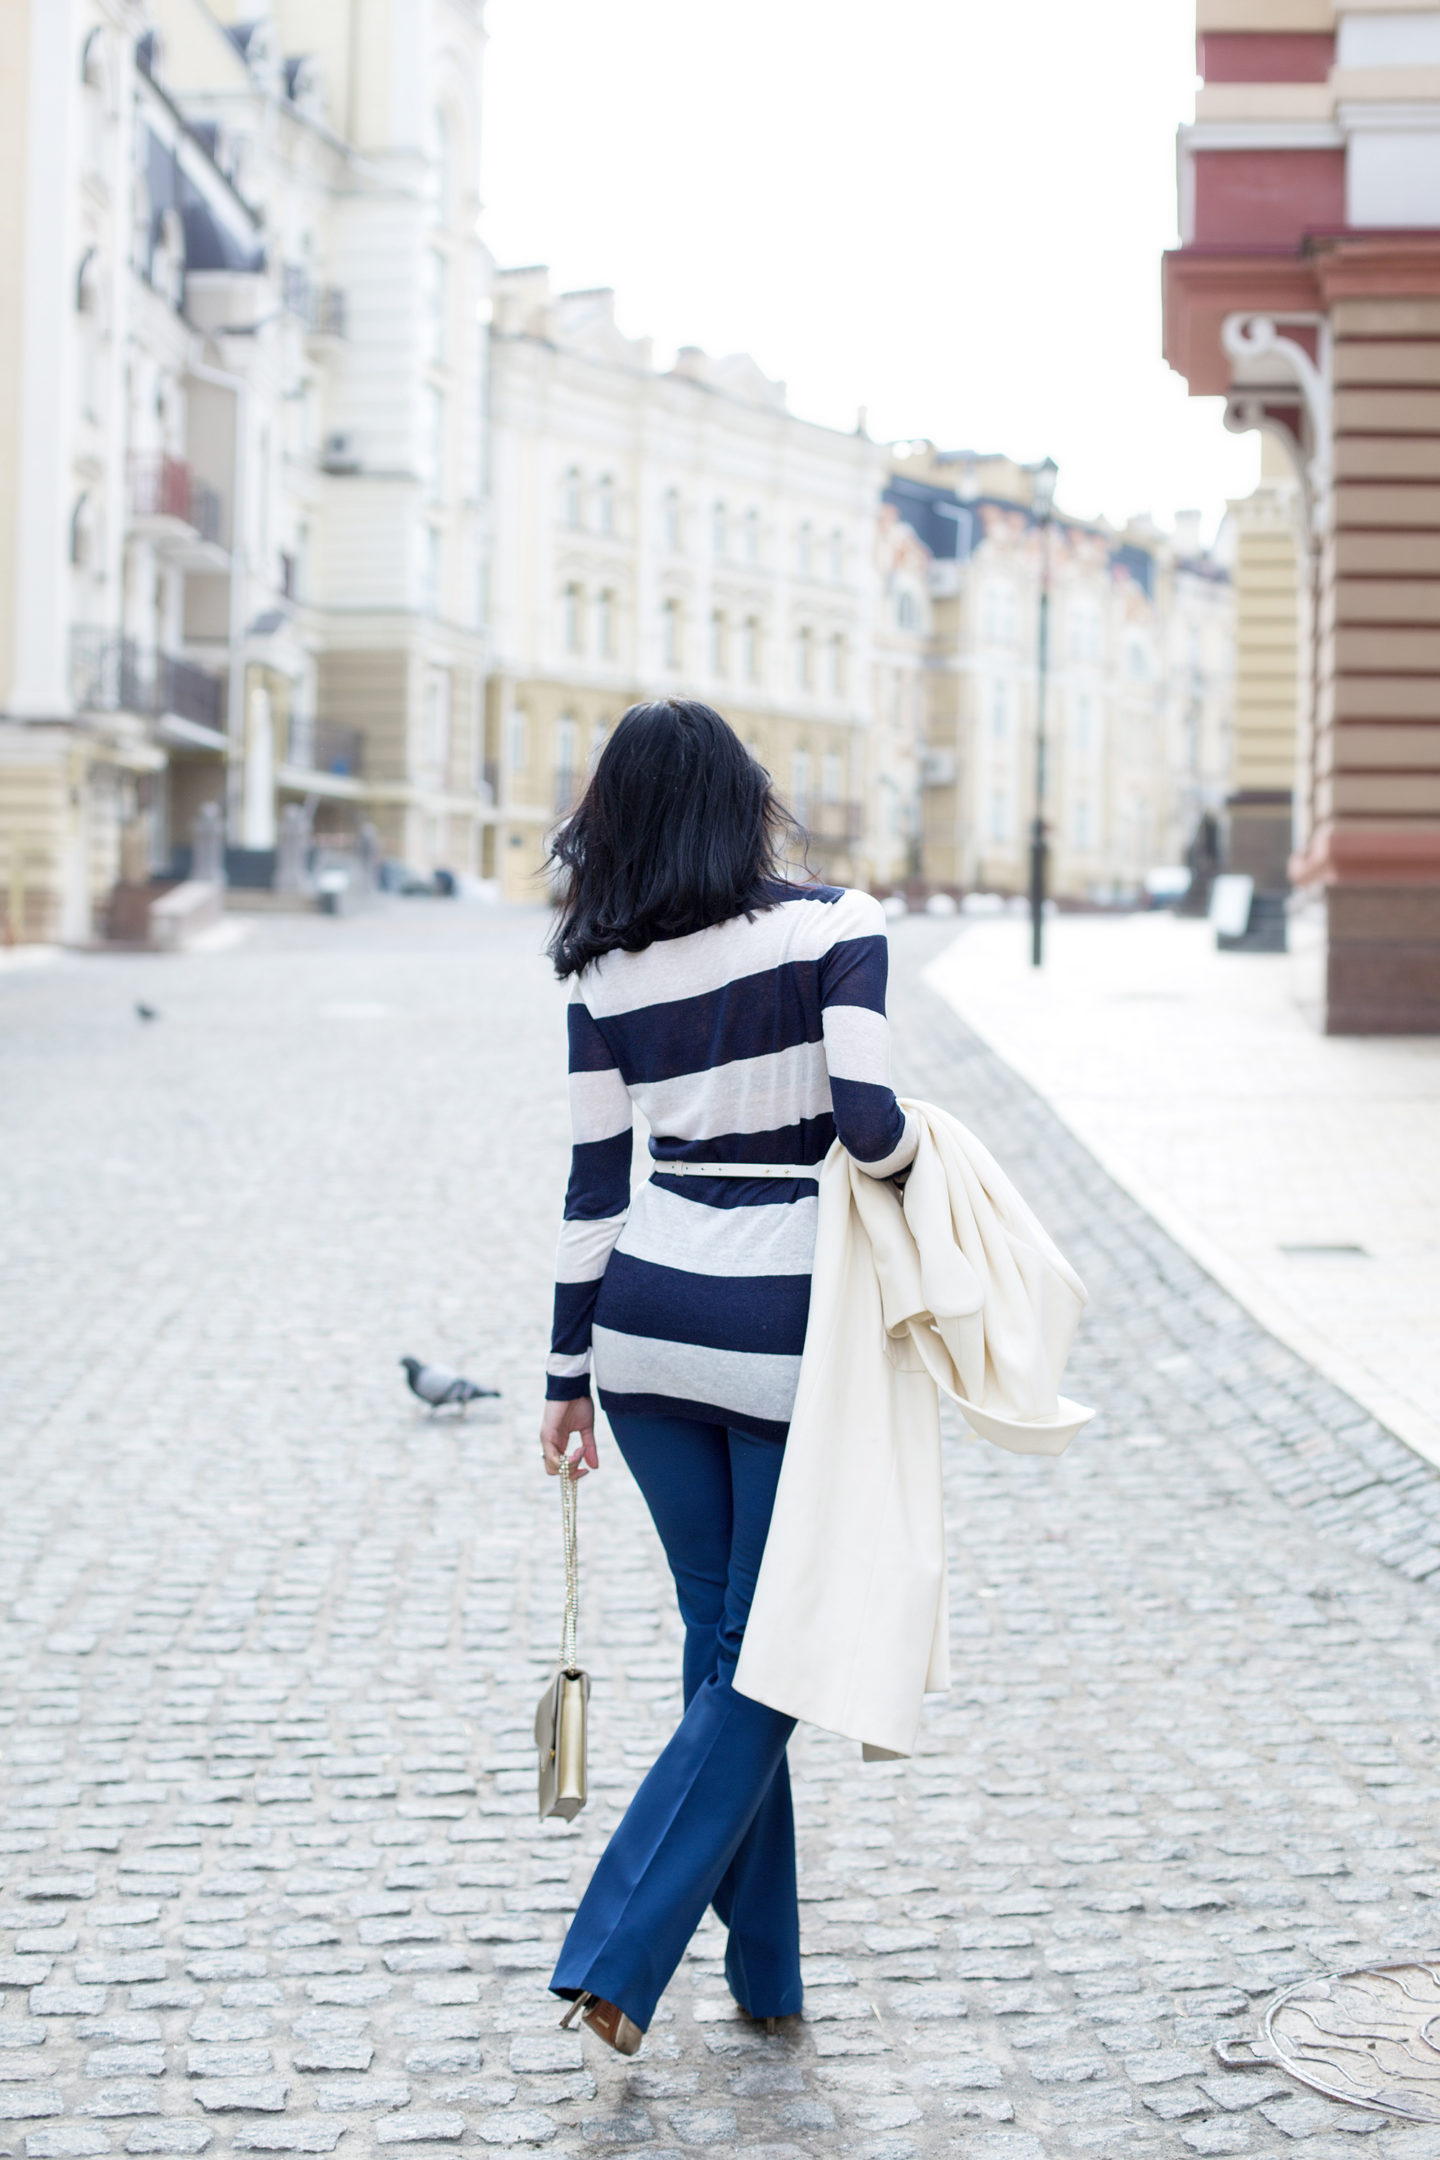 Stripes a timeless musthave